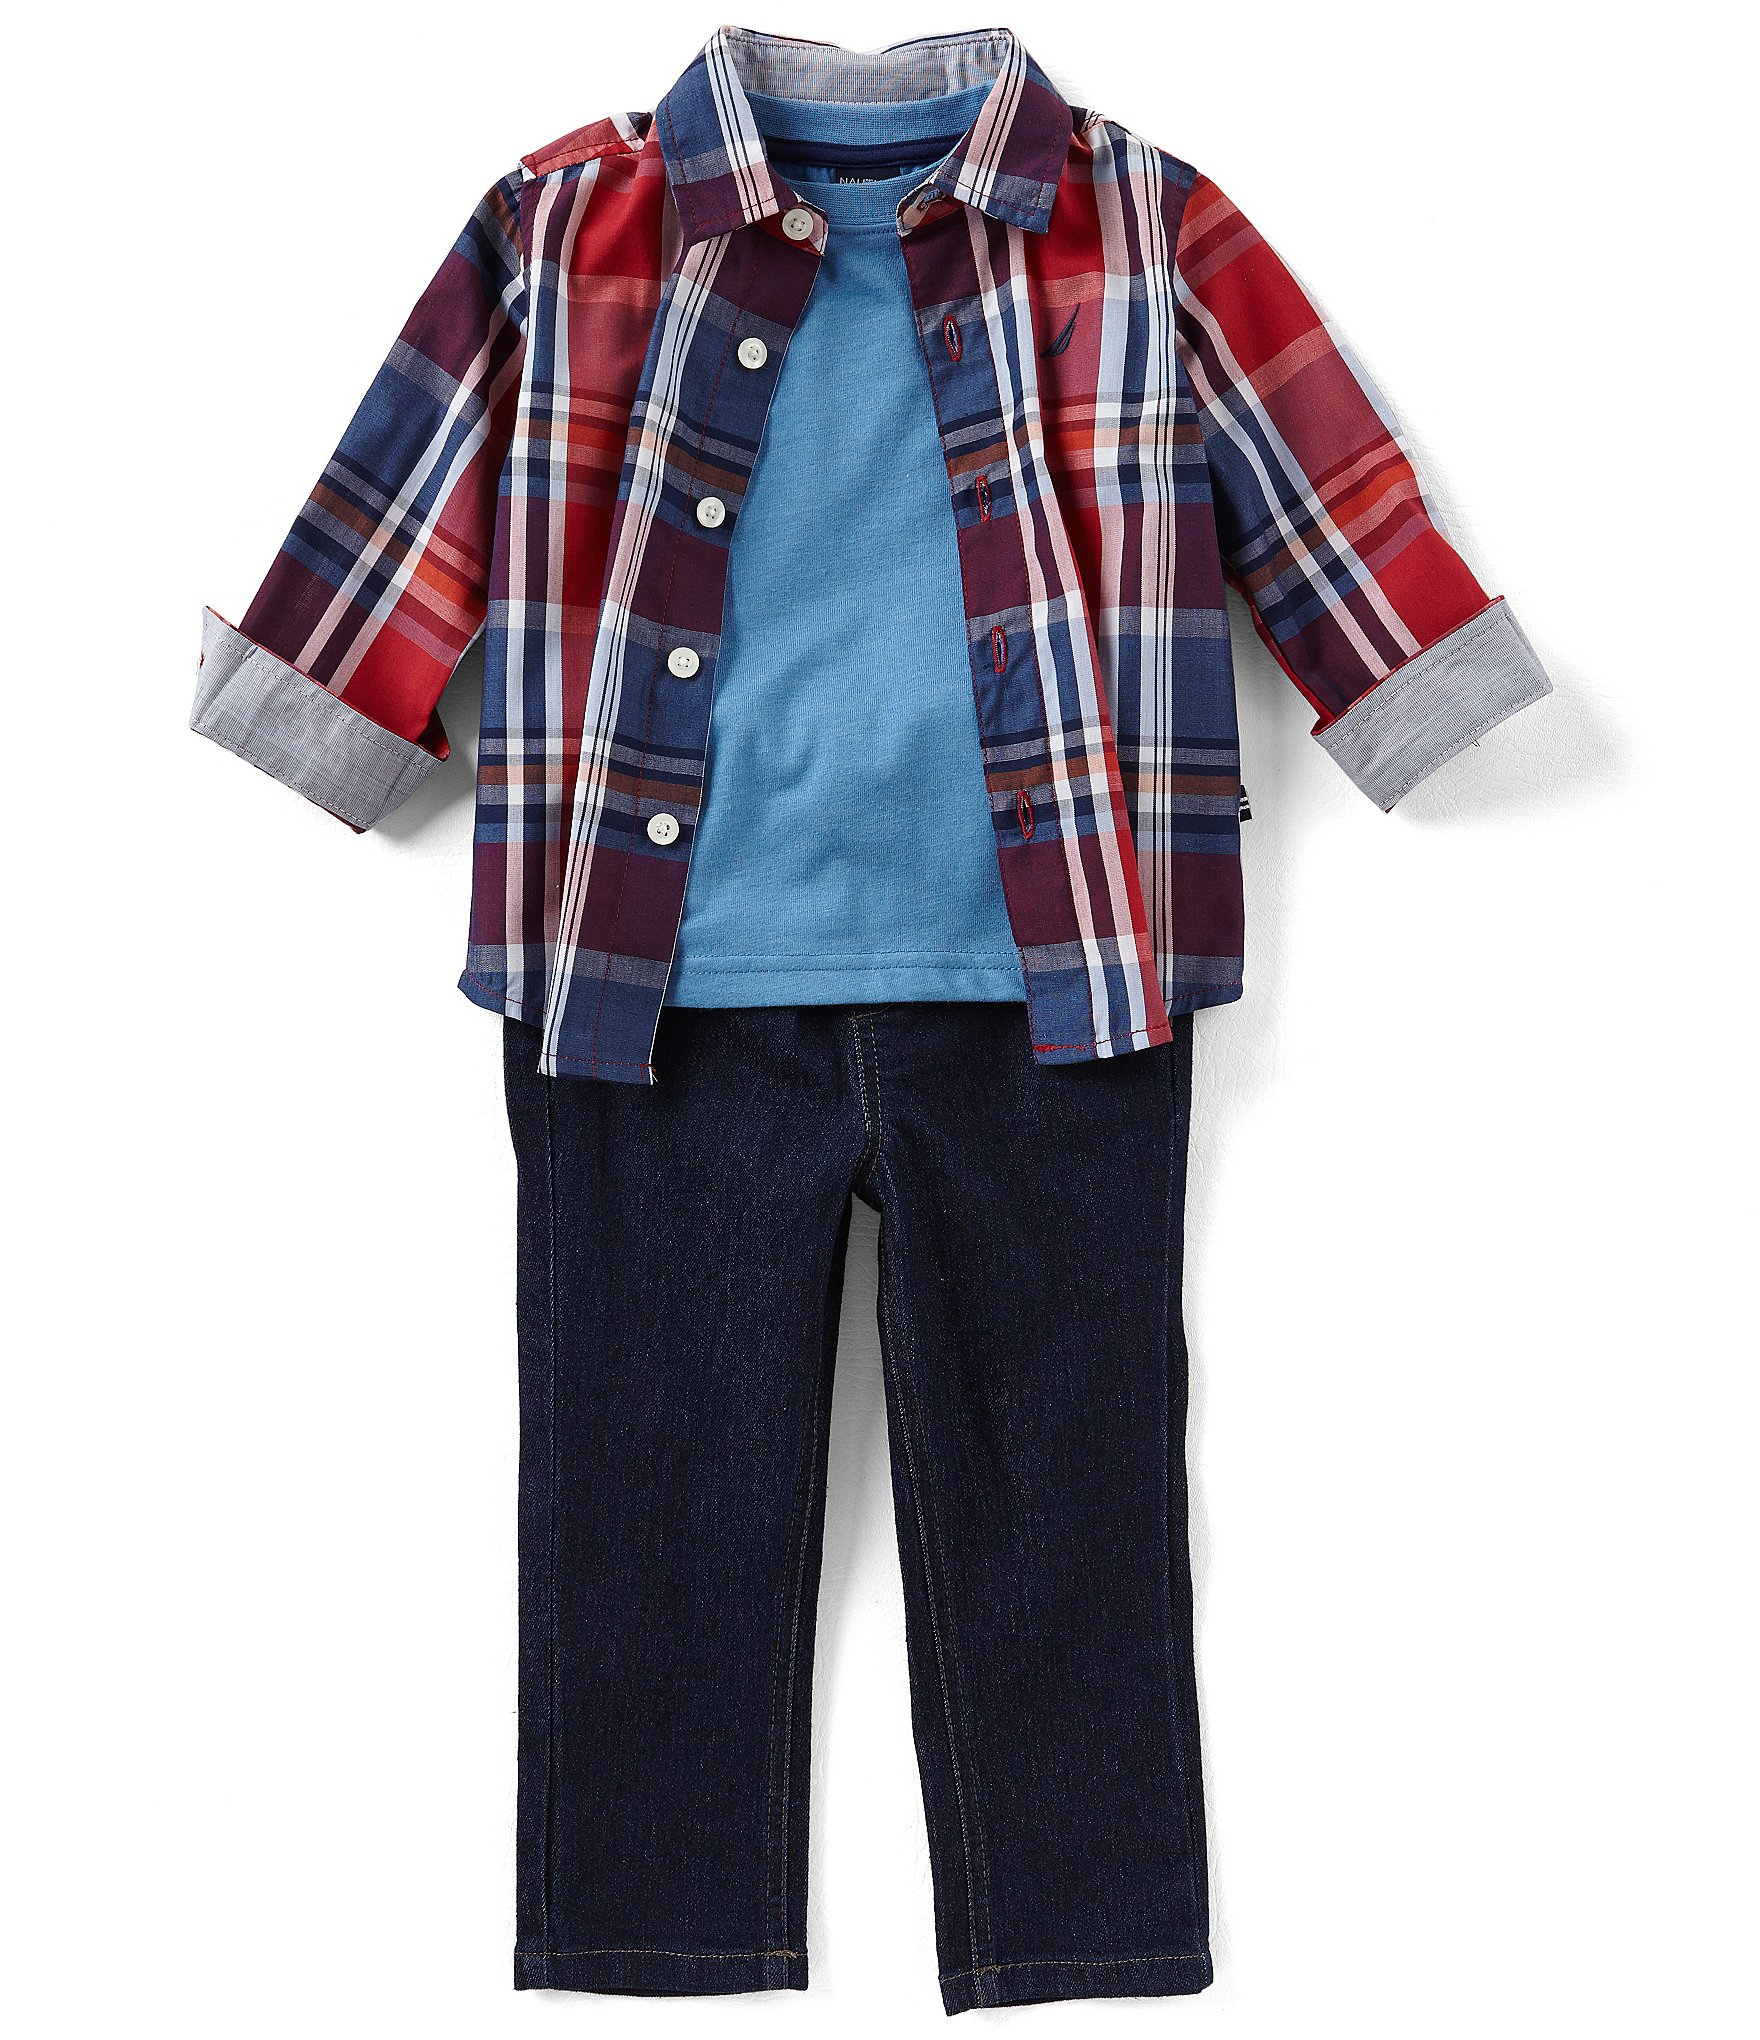 nautica baby boys 12 24 months plaid button down shirt. Black Bedroom Furniture Sets. Home Design Ideas